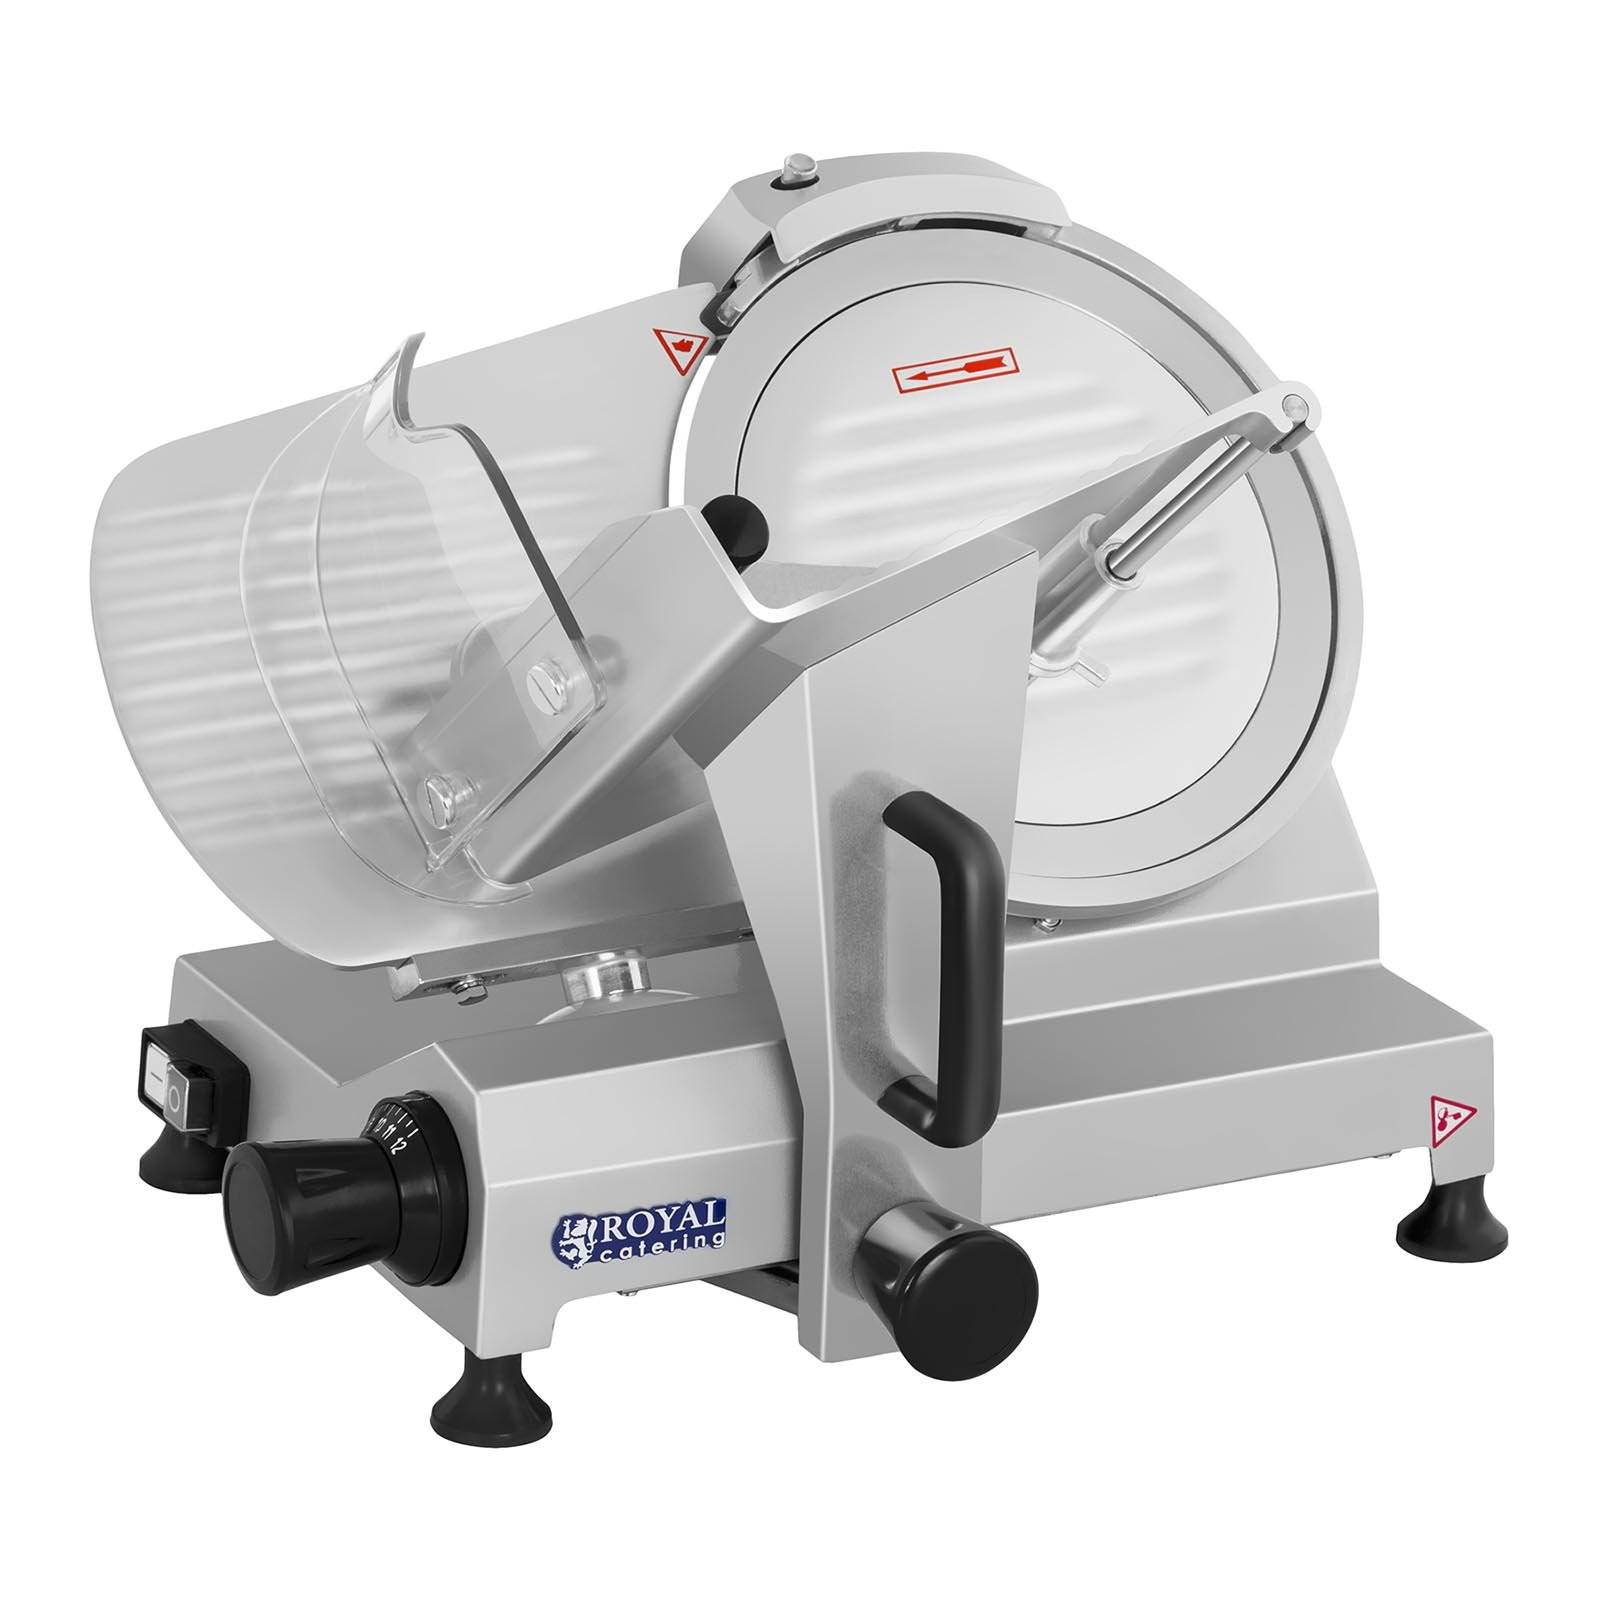 Royal Catering Affettatrice - 250 mm - fino a 12 mm - 150 W RCAM-250